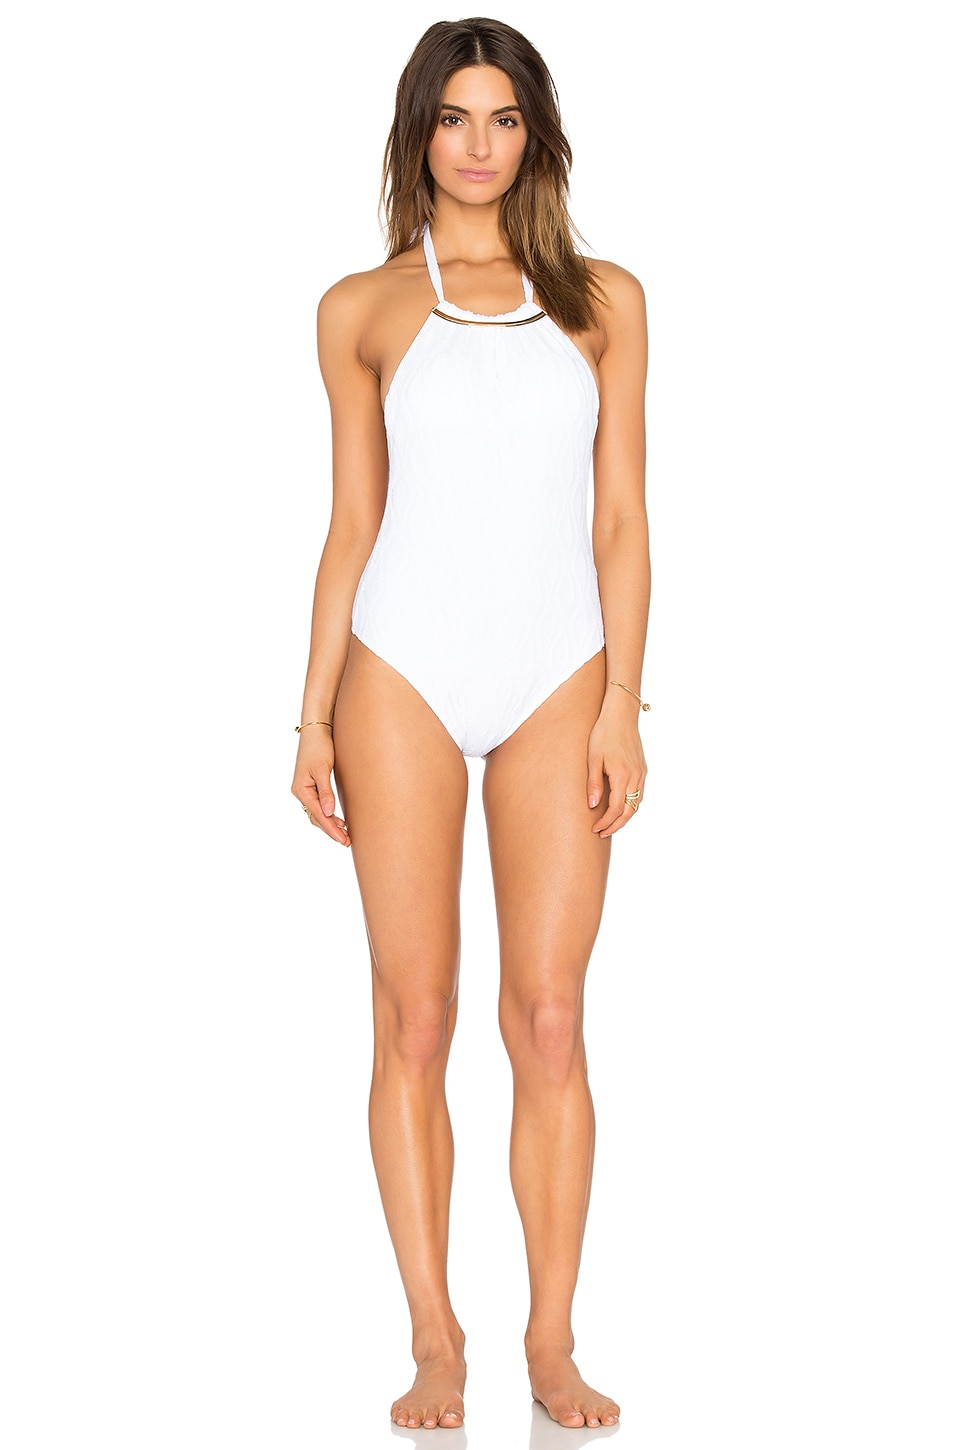 Larissa Minatto Renda Swimsuit in White